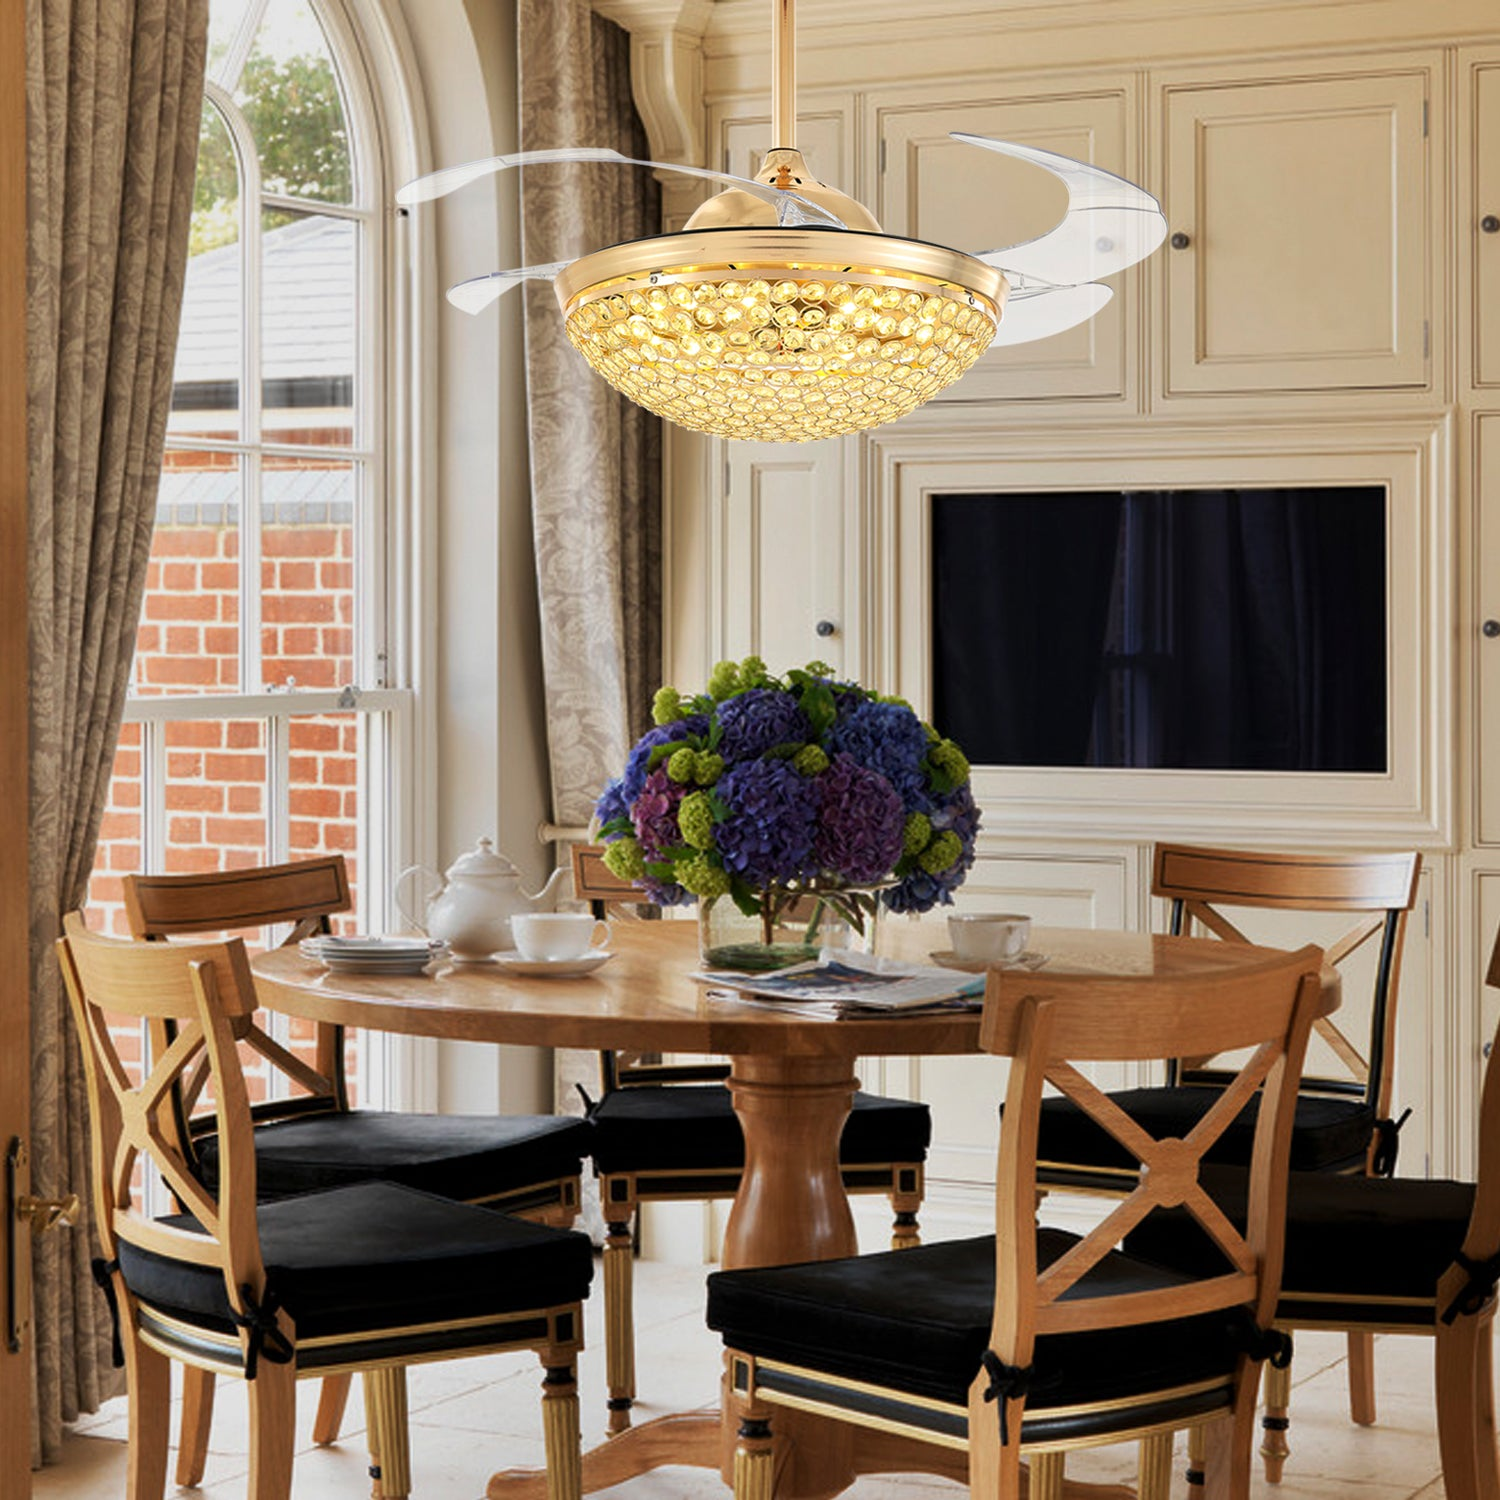 Retractable Crystal Ceiling Fan With Invisible Blades - Dining Room